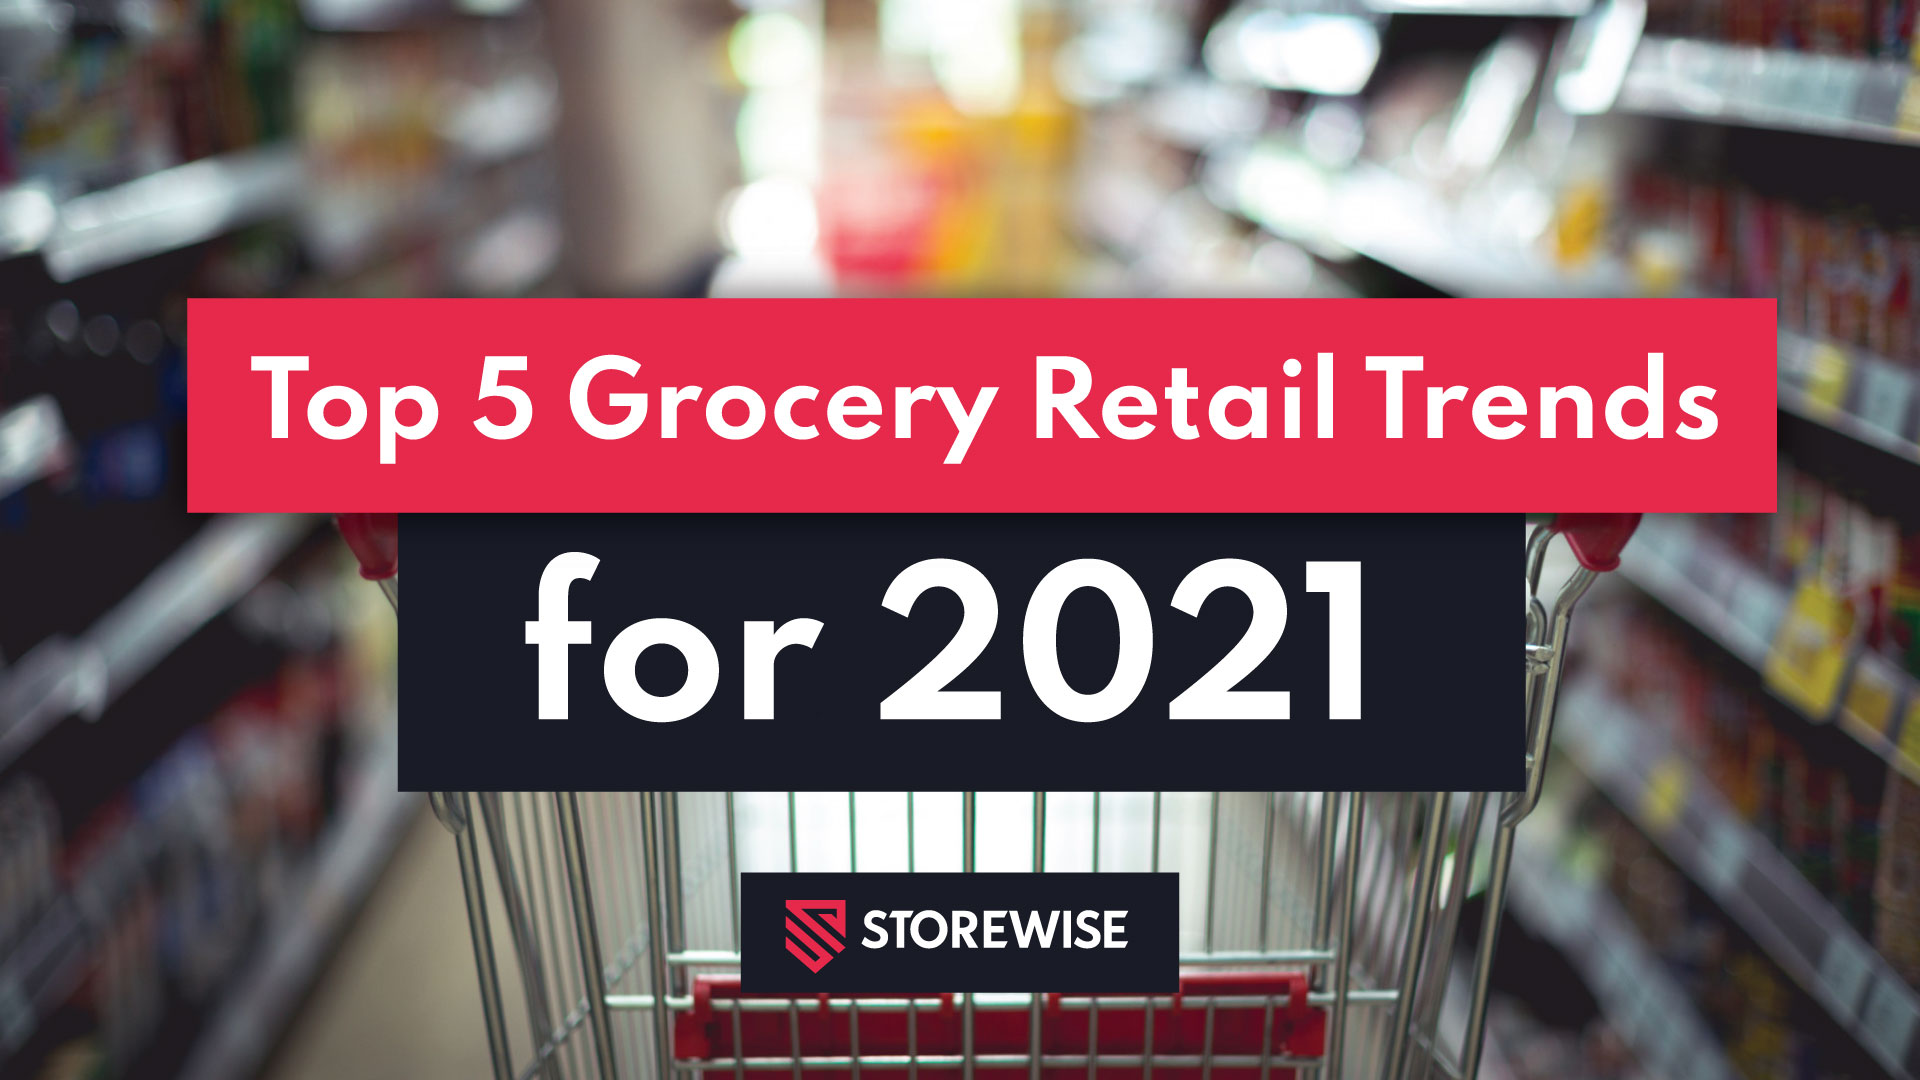 The Top Grocery Retail Trends for 2021